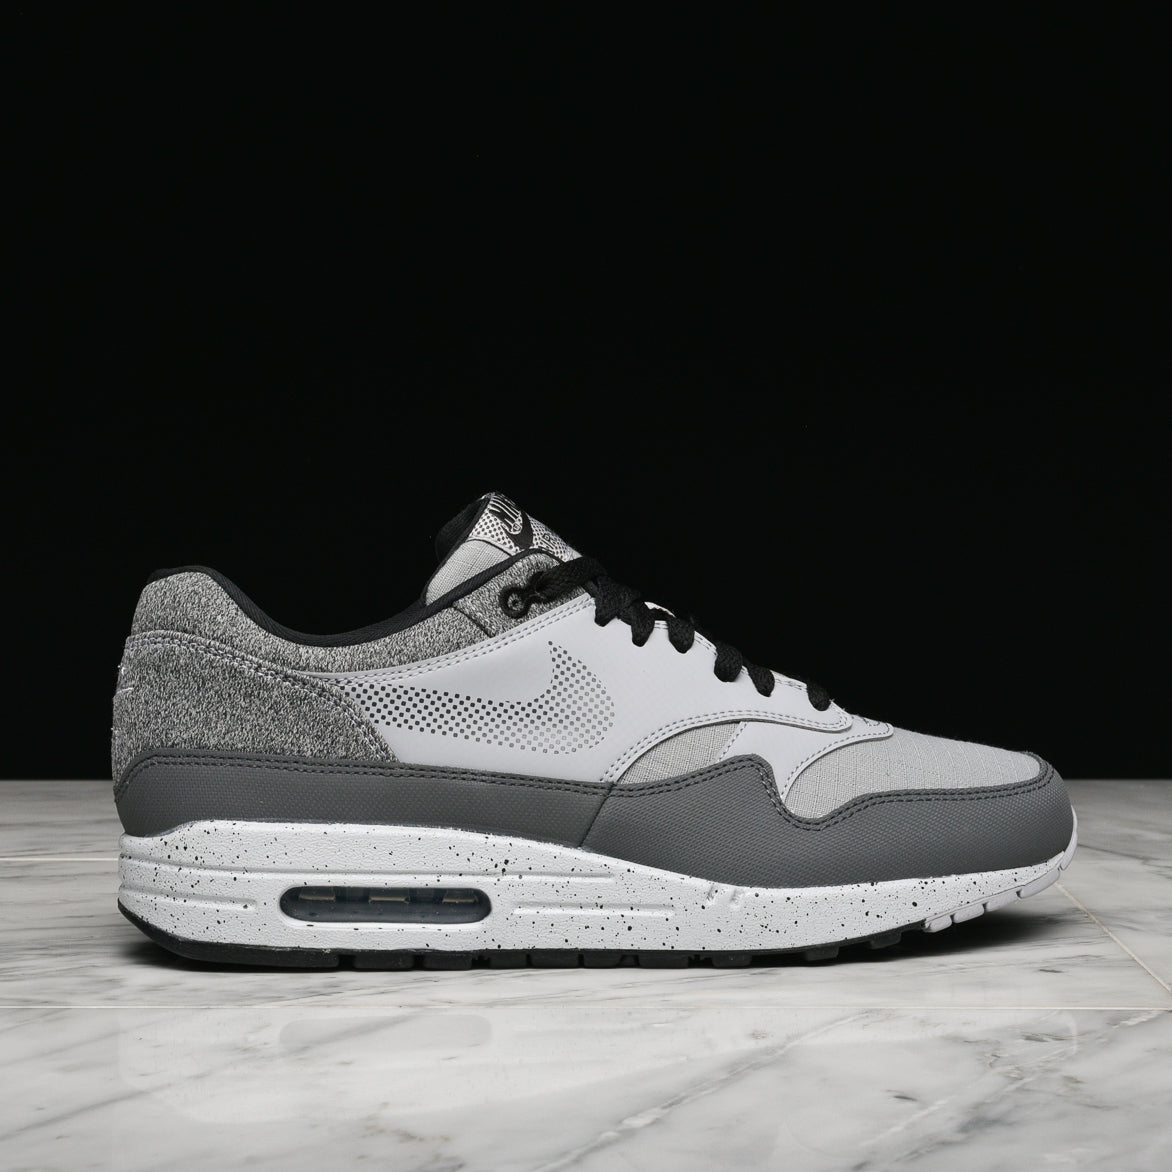 new concept e5e13 1c6f9 AIR MAX 1 SE - WOLF GREY   ANTHRACITE   lapstoneandhammer.com